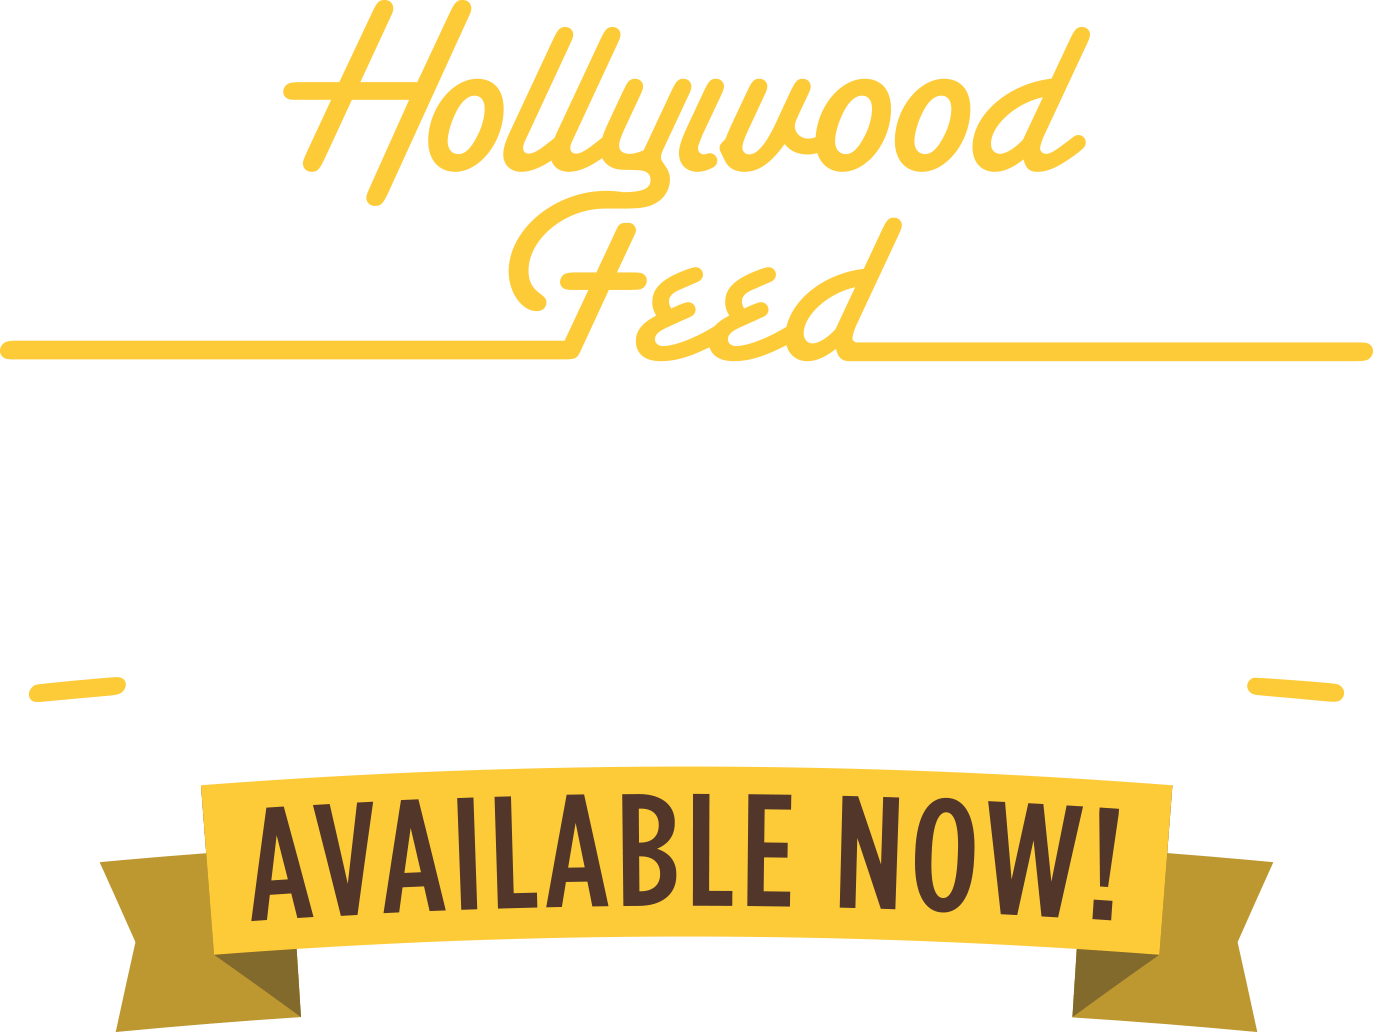 Curbside Pick-Up Available Now